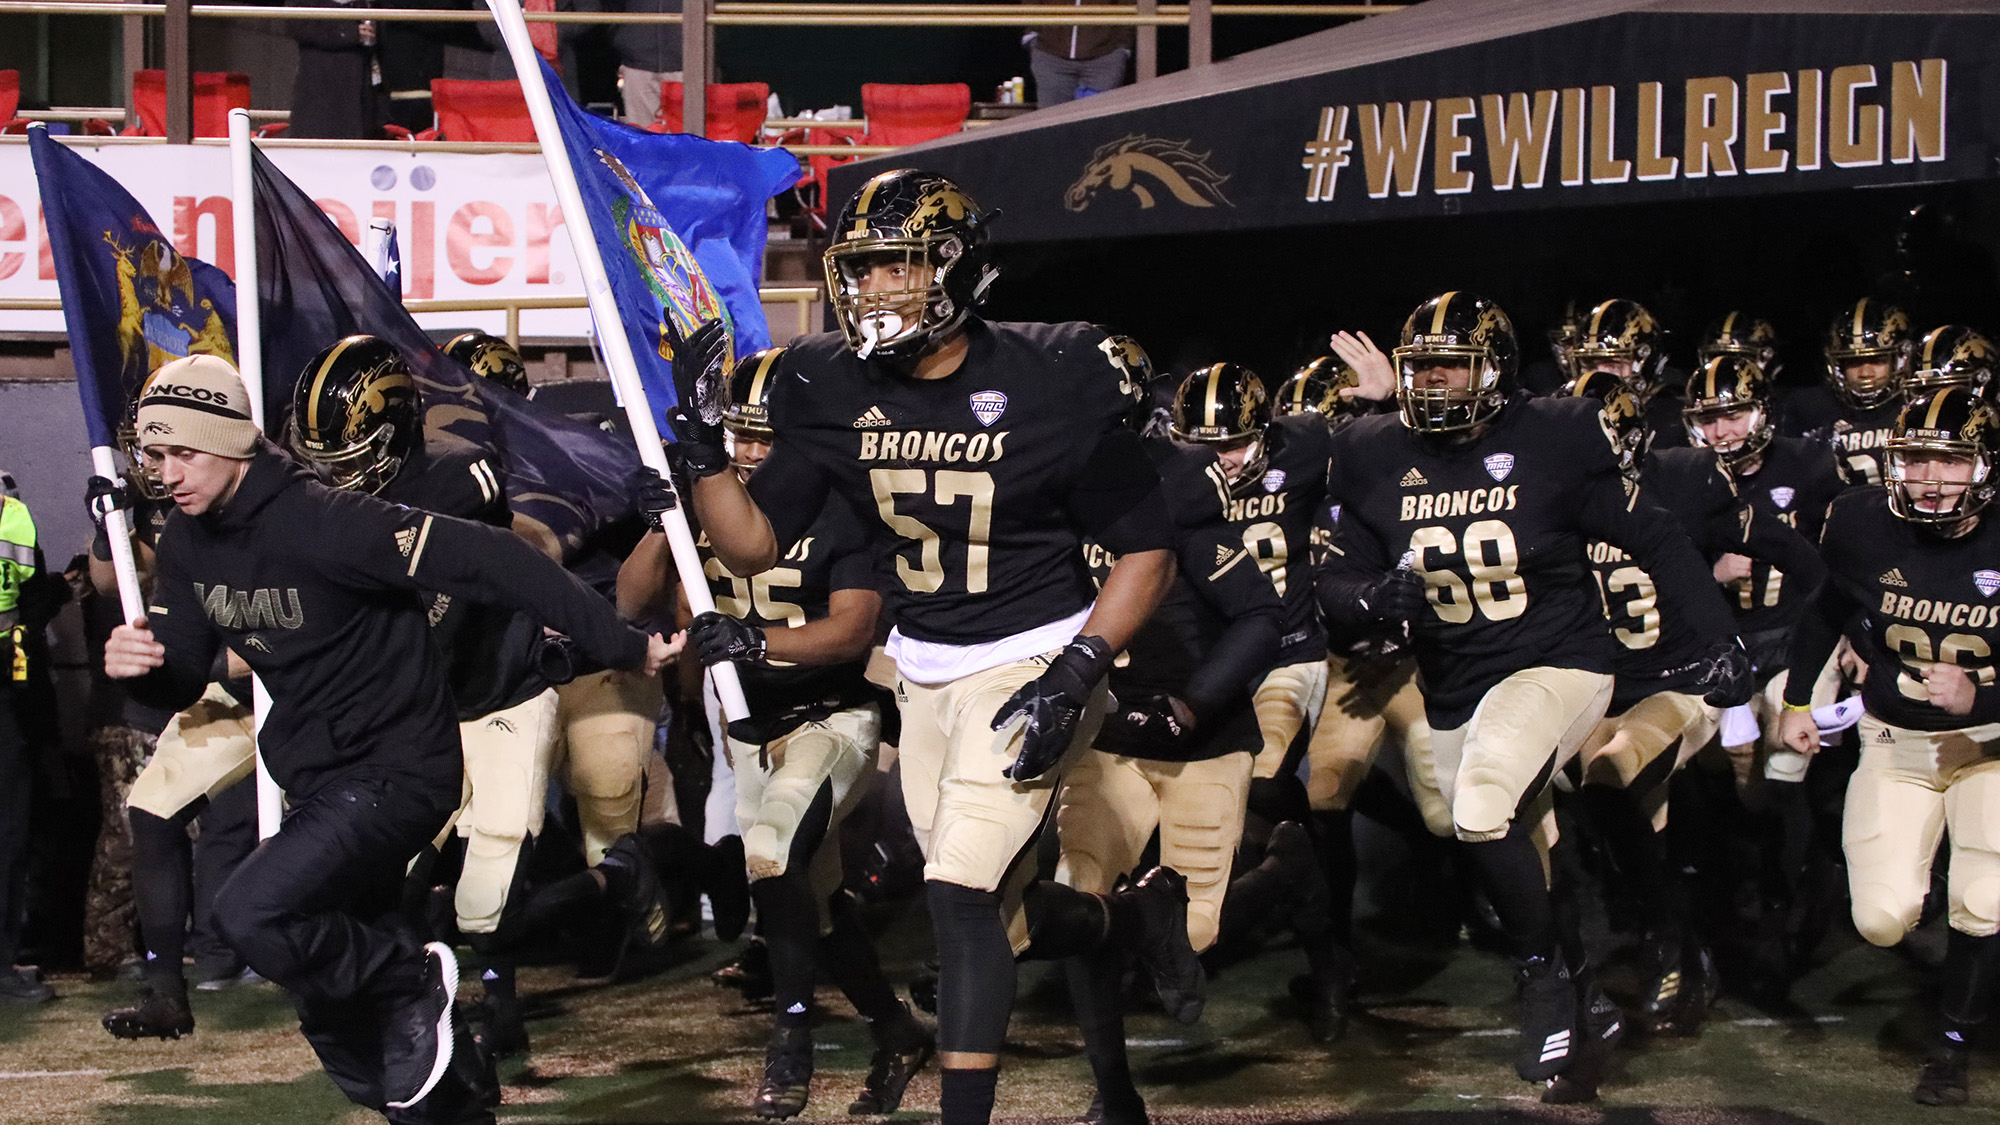 Broncos Football Schedule 2019 2019 Western Michigan Football Schedule Announced   Western